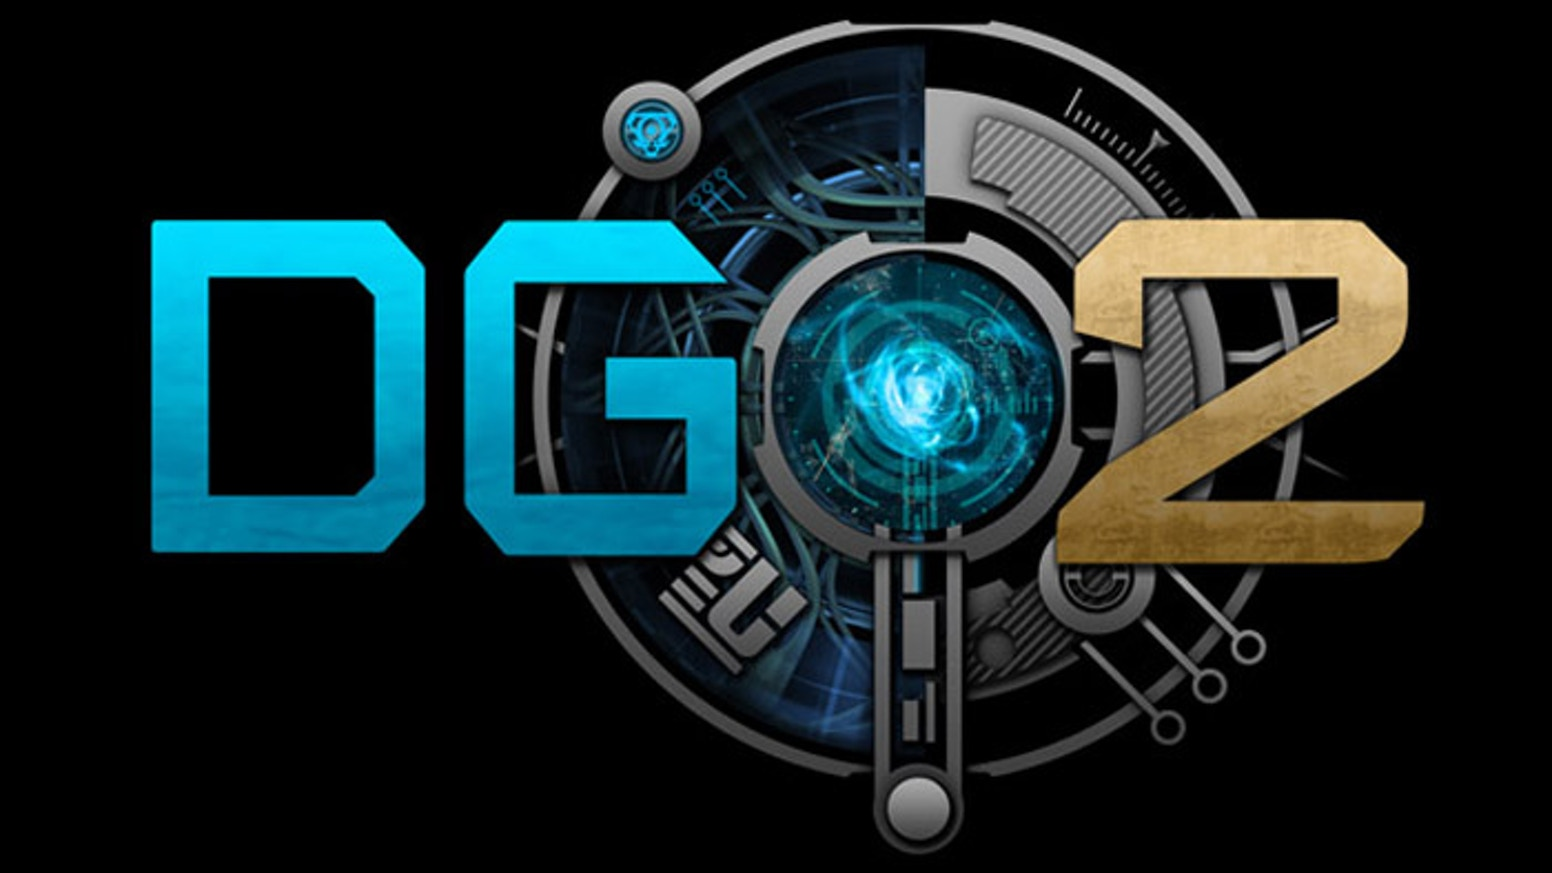 Defense Grid 2 by Hidden Path Entertainment, AMD & Razer » DG2